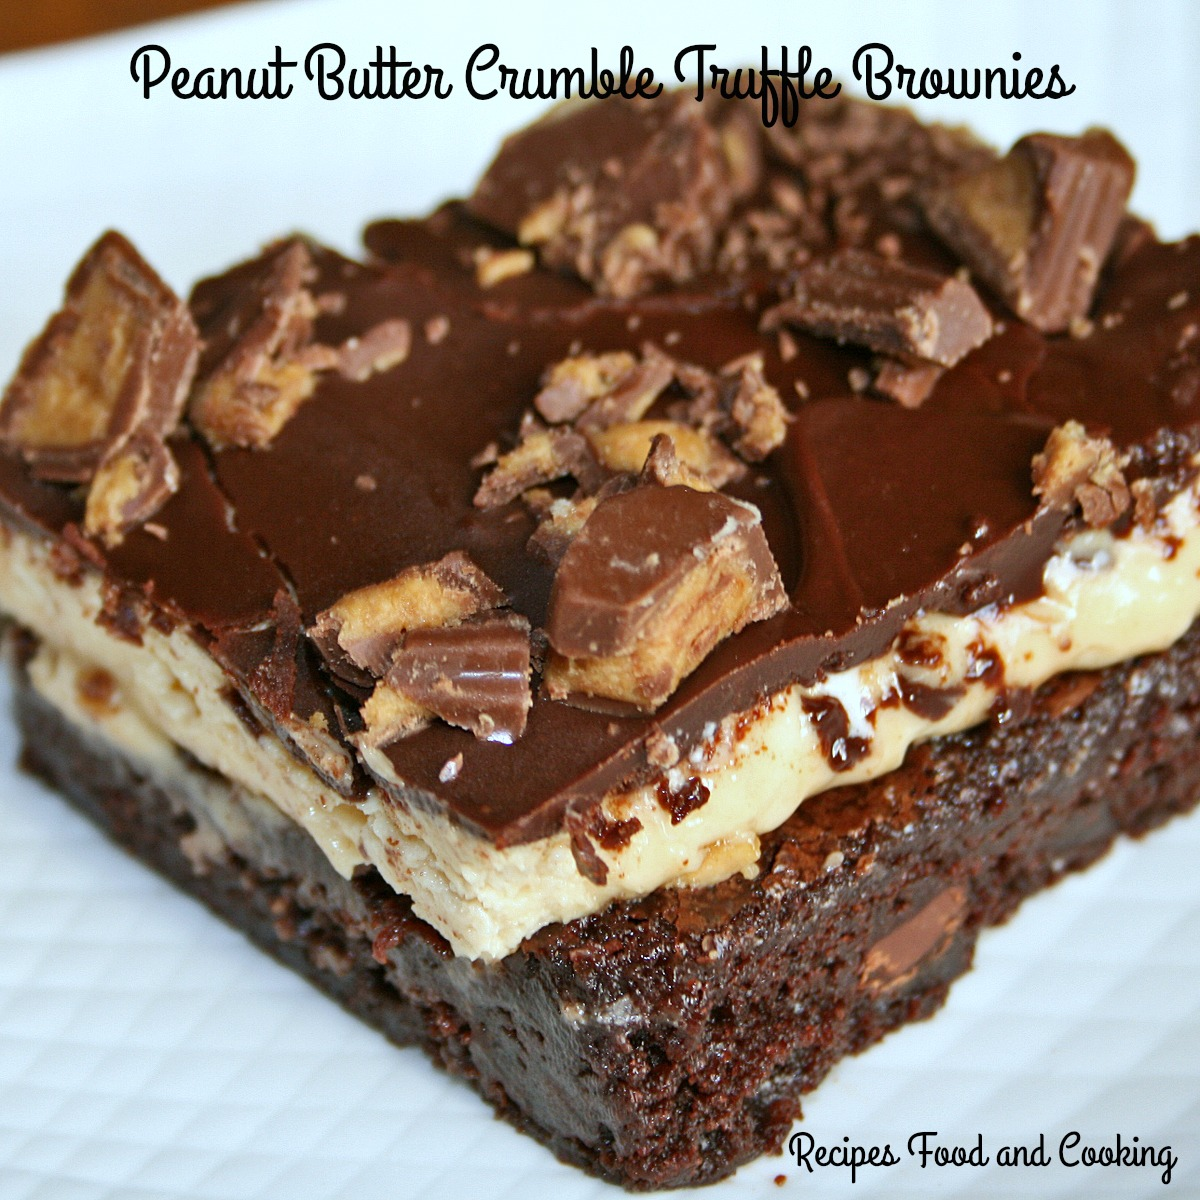 Peanut Butter Crumble Truffle Brownies